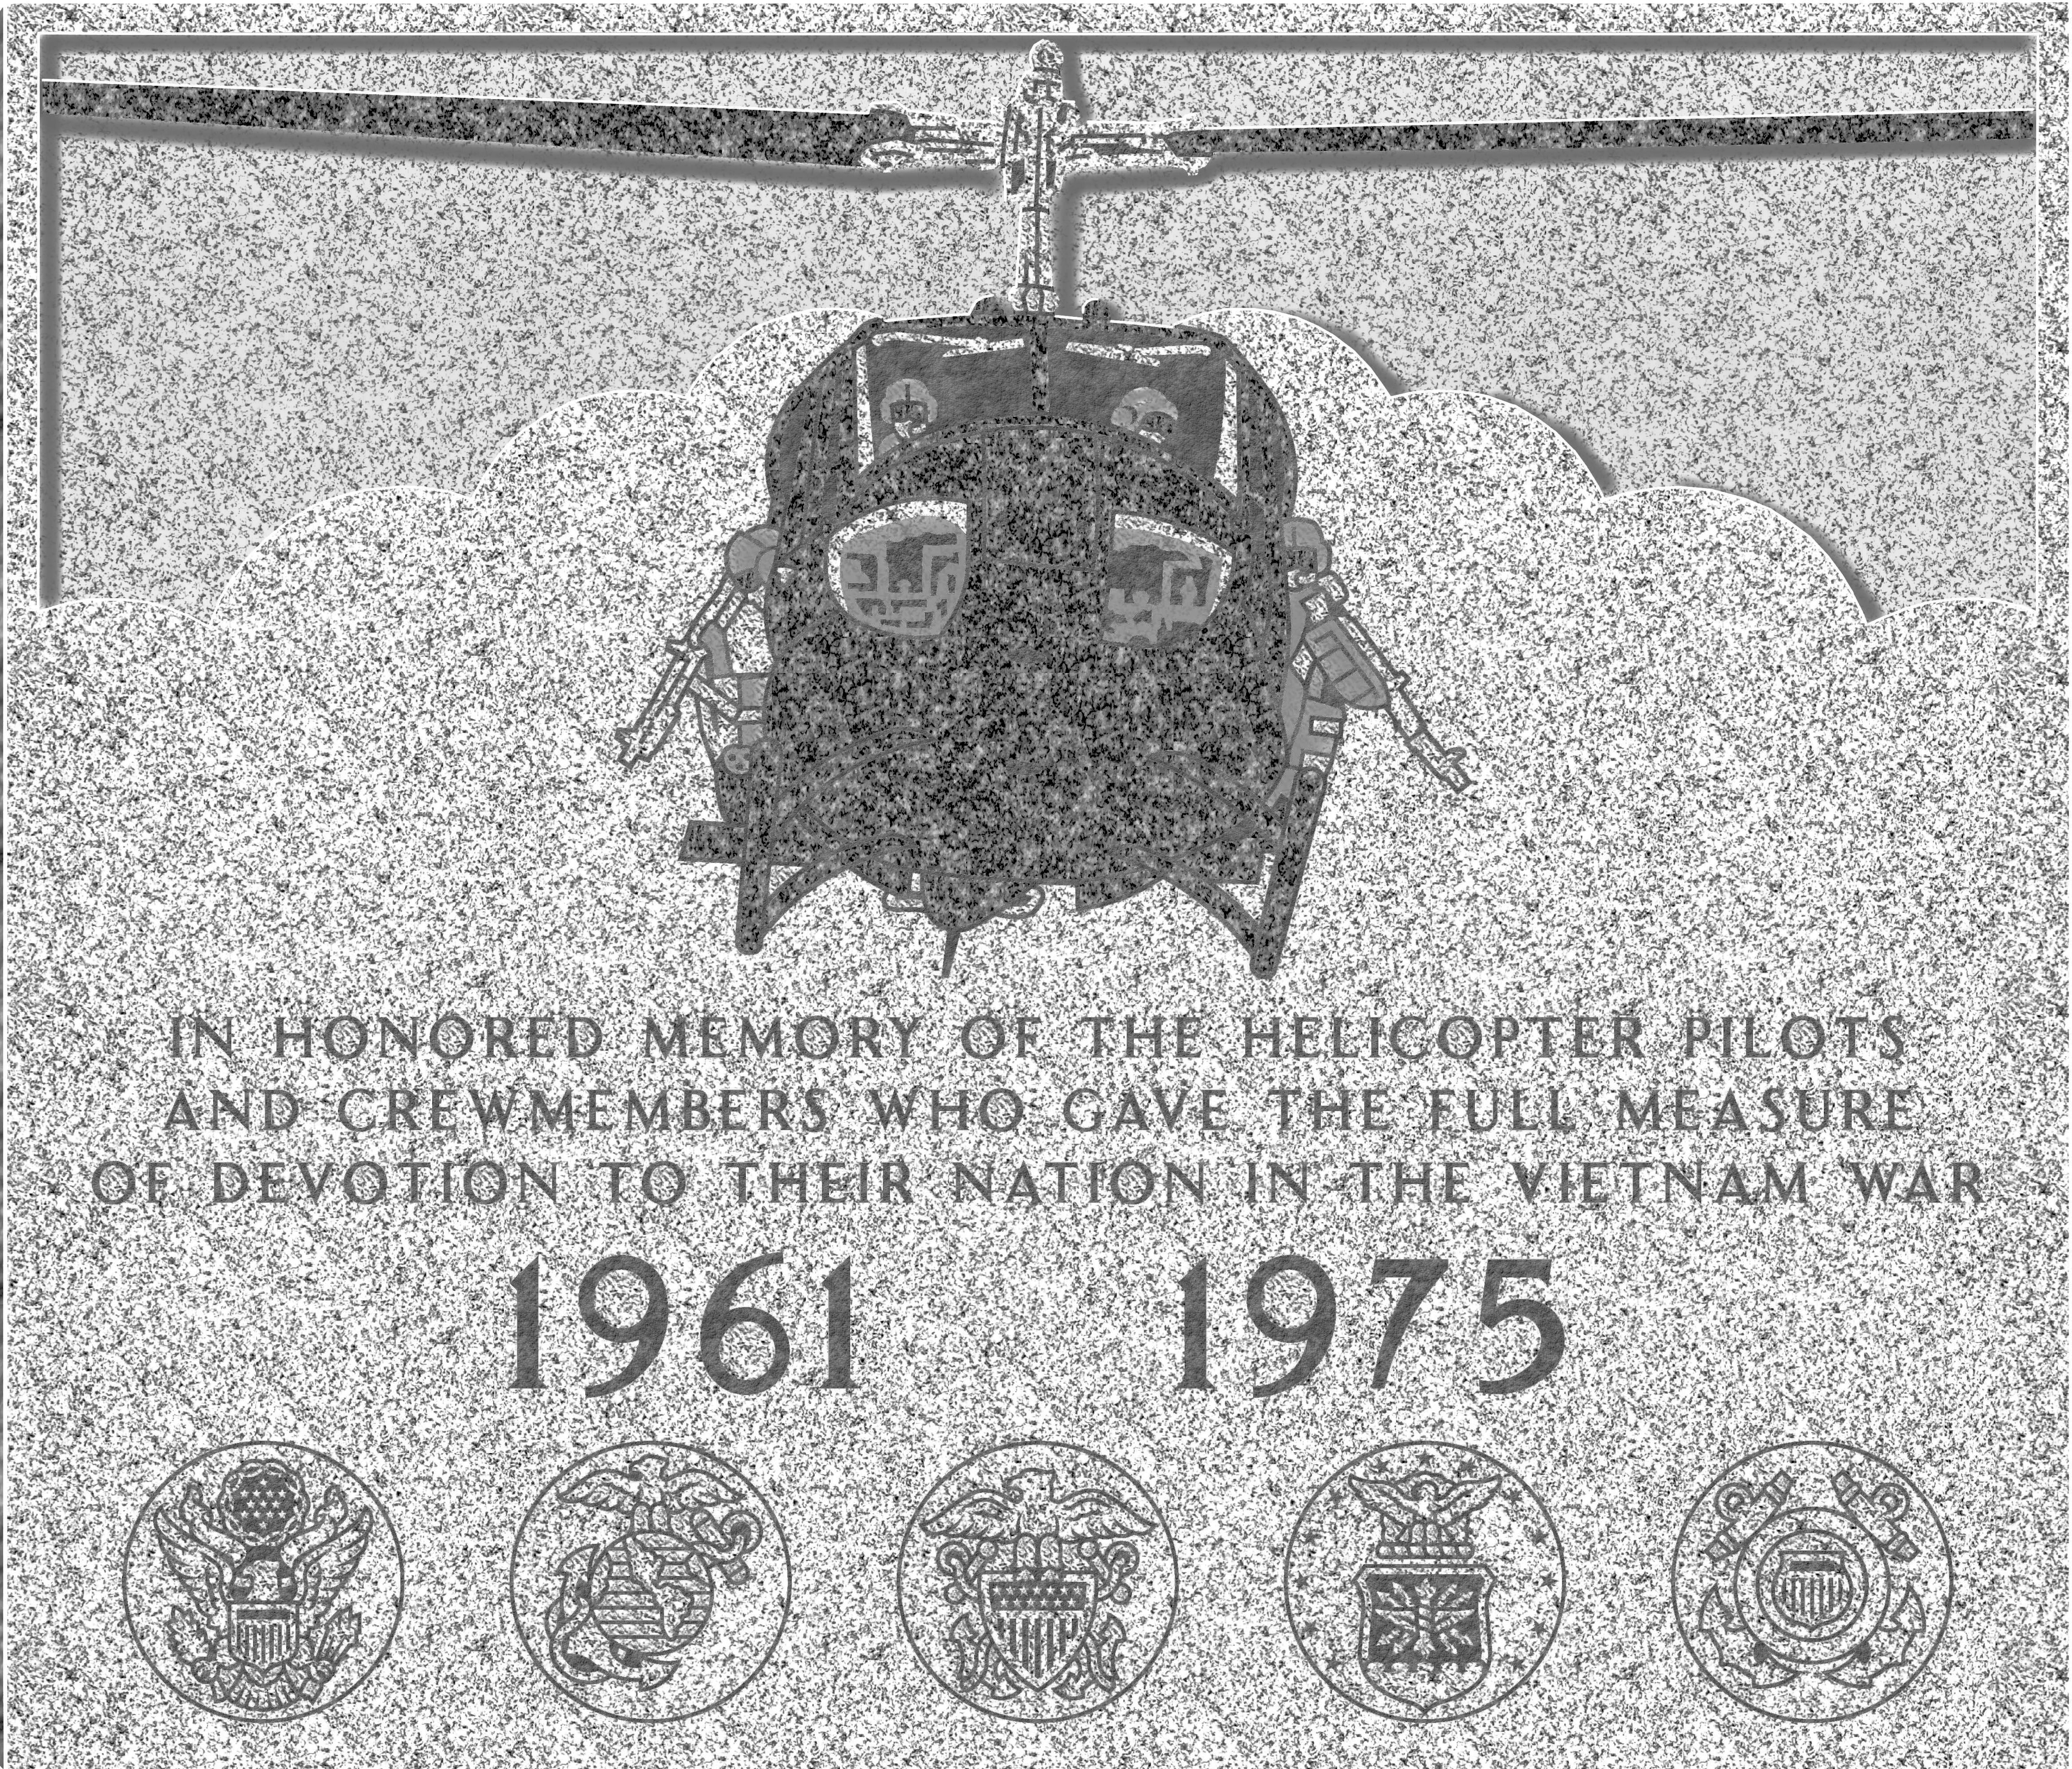 Vietnam helicopter monument